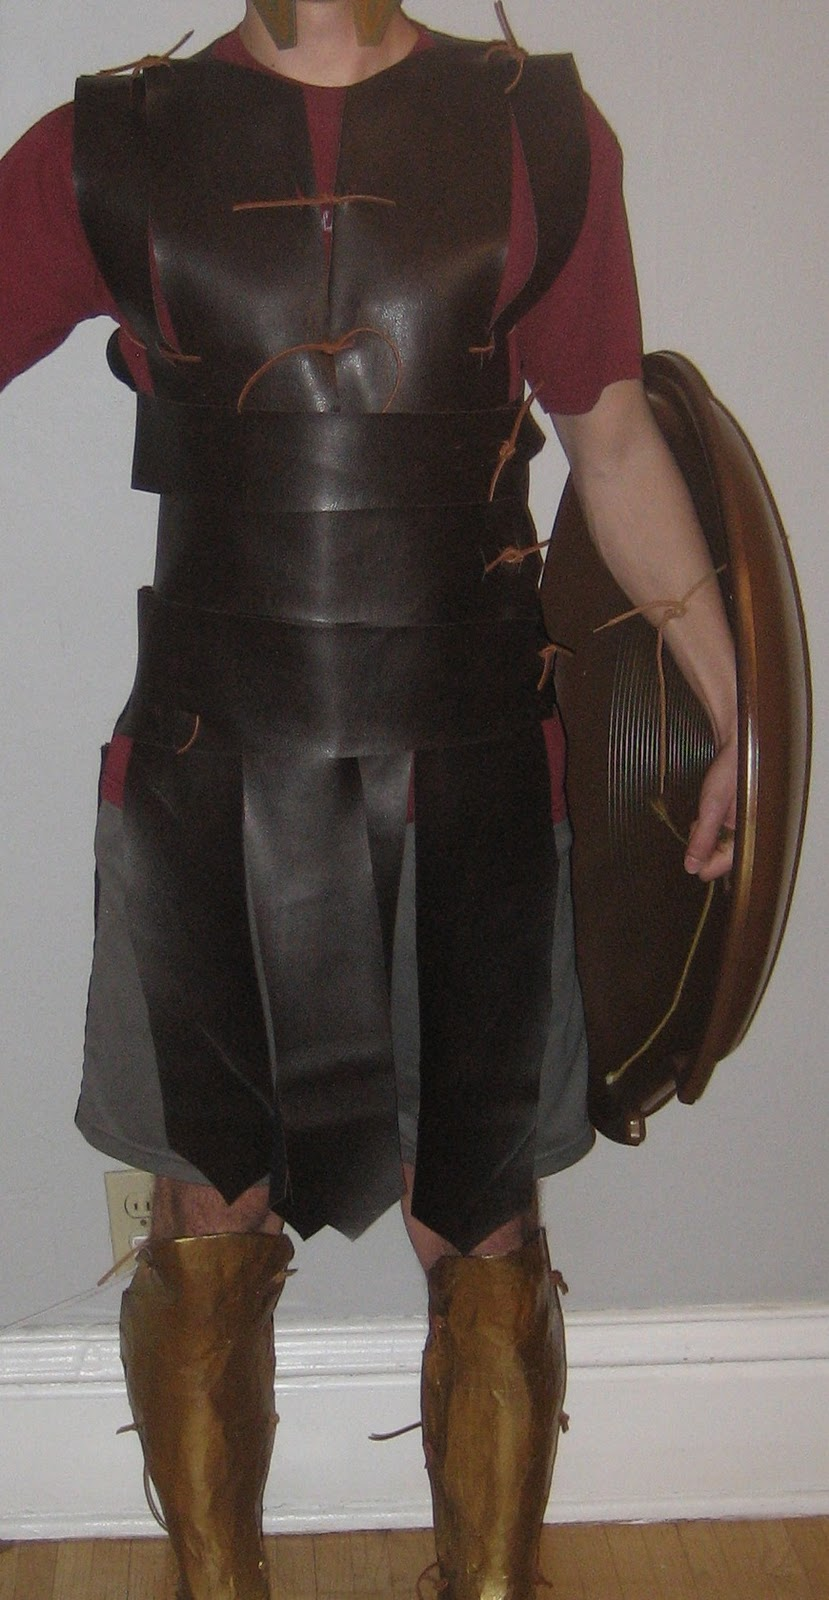 Chuck does art diy spartan hoplite costume how to make a faux chuck does art diy spartan hoplite costume how to make a faux leather linothorax inspired by gladiator costume no sewing required solutioingenieria Gallery